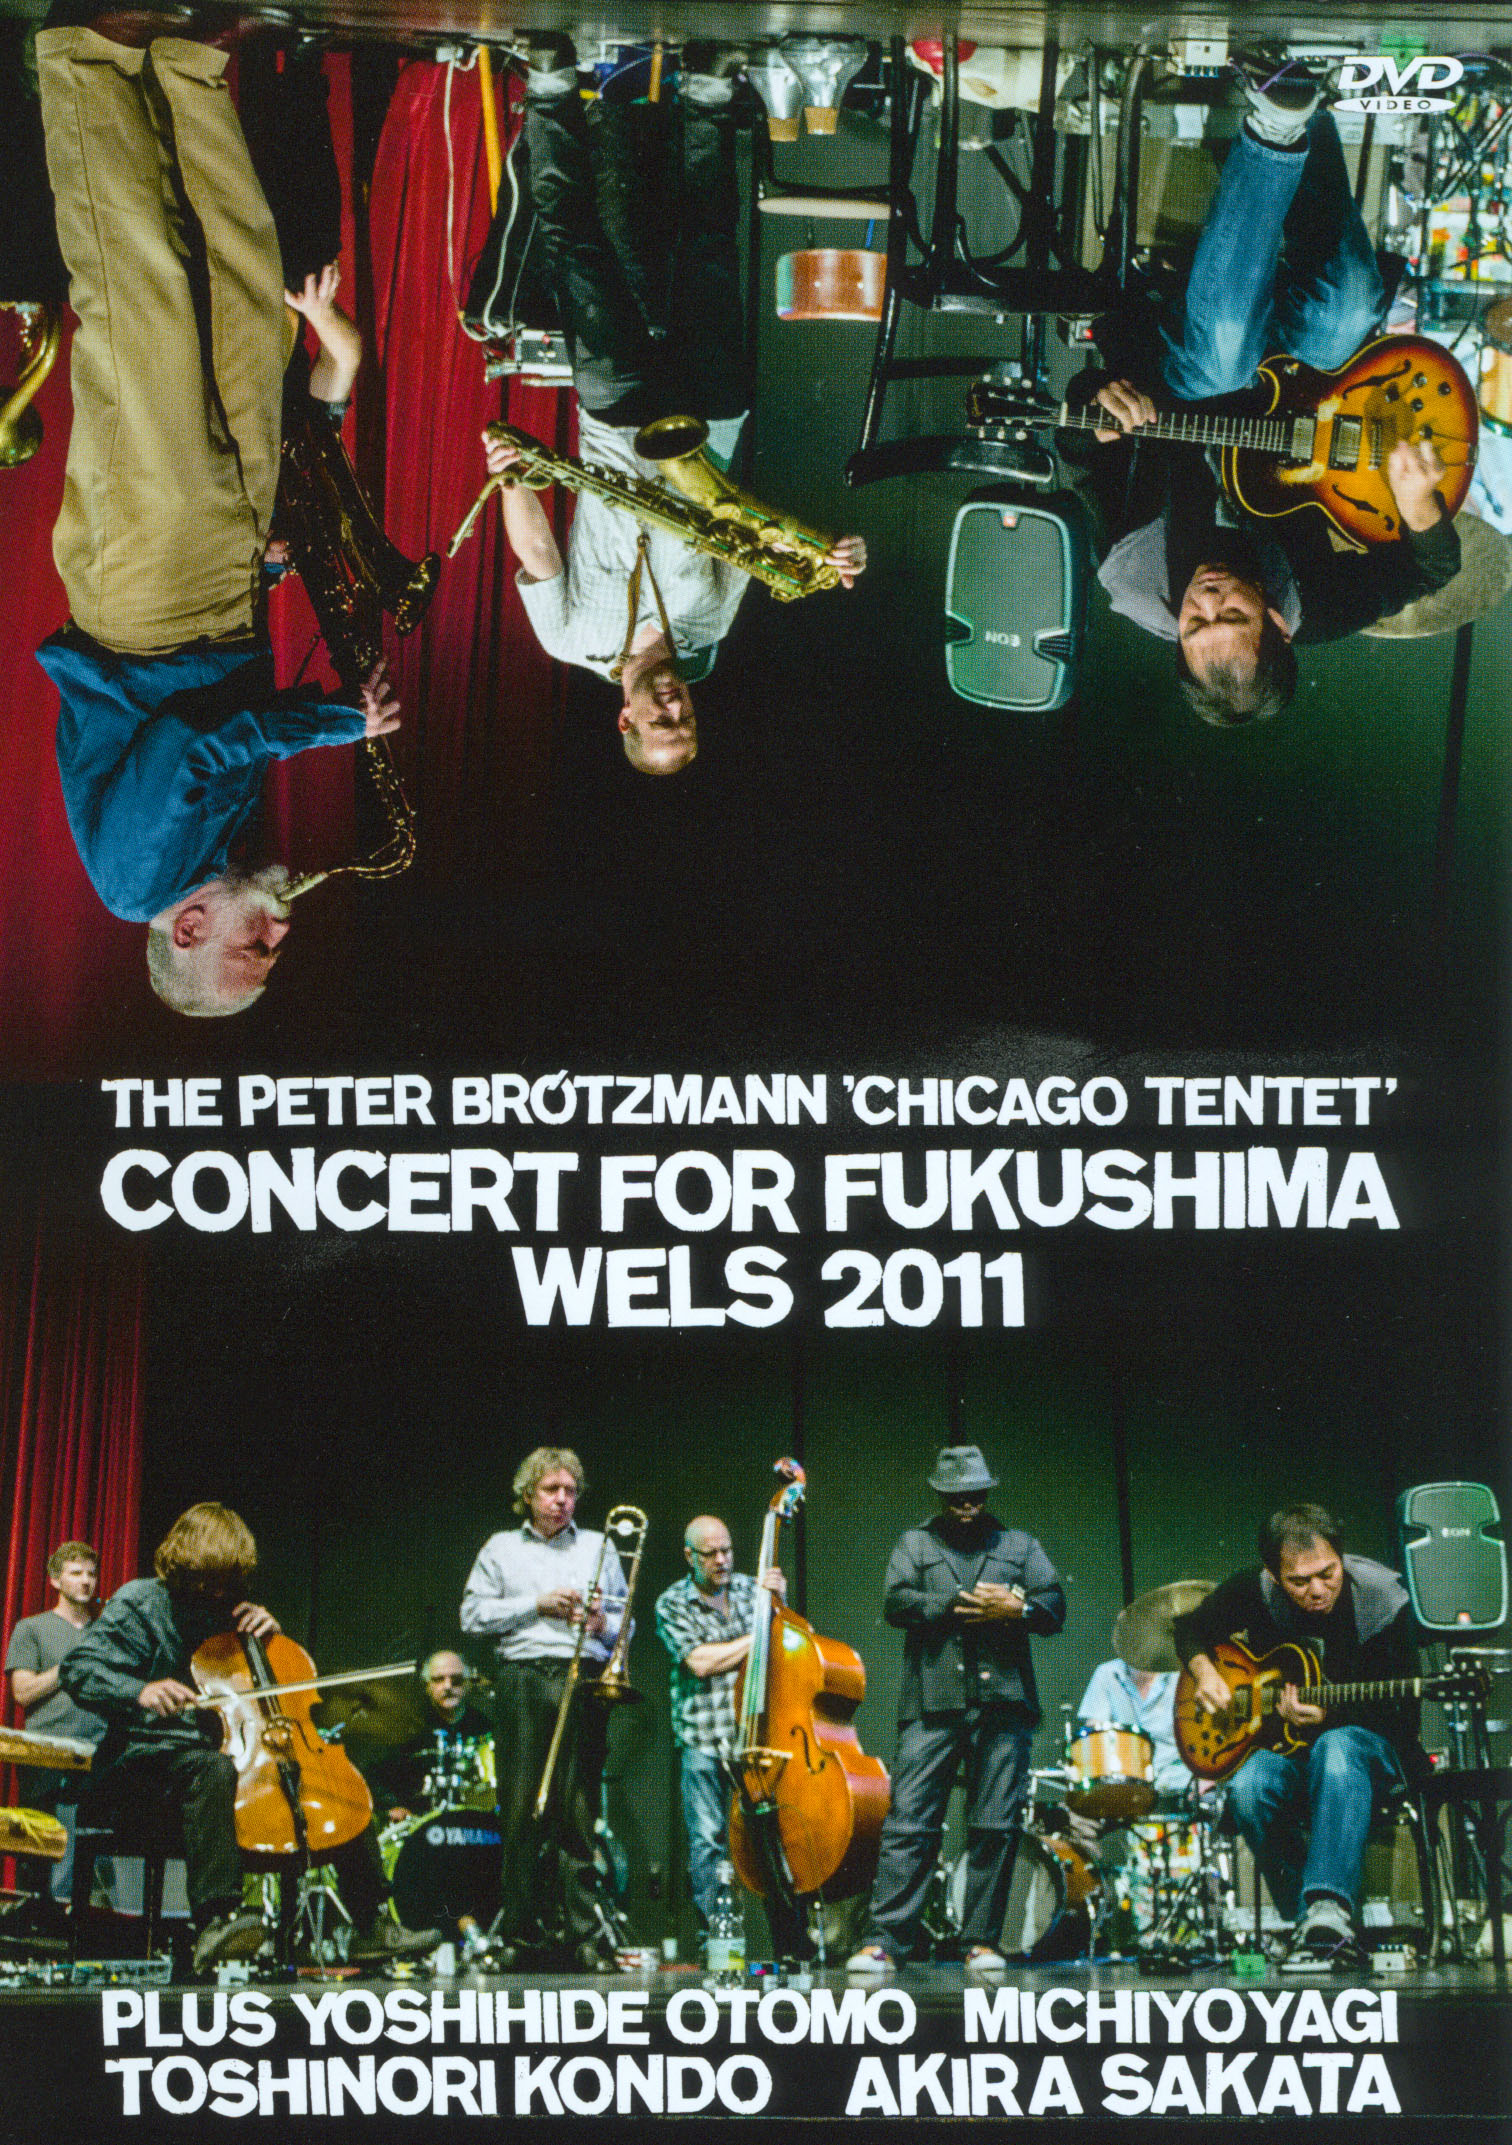 The Peter Brotzmann Chicago Tentet: Concert for Fukushima - Wels 2011